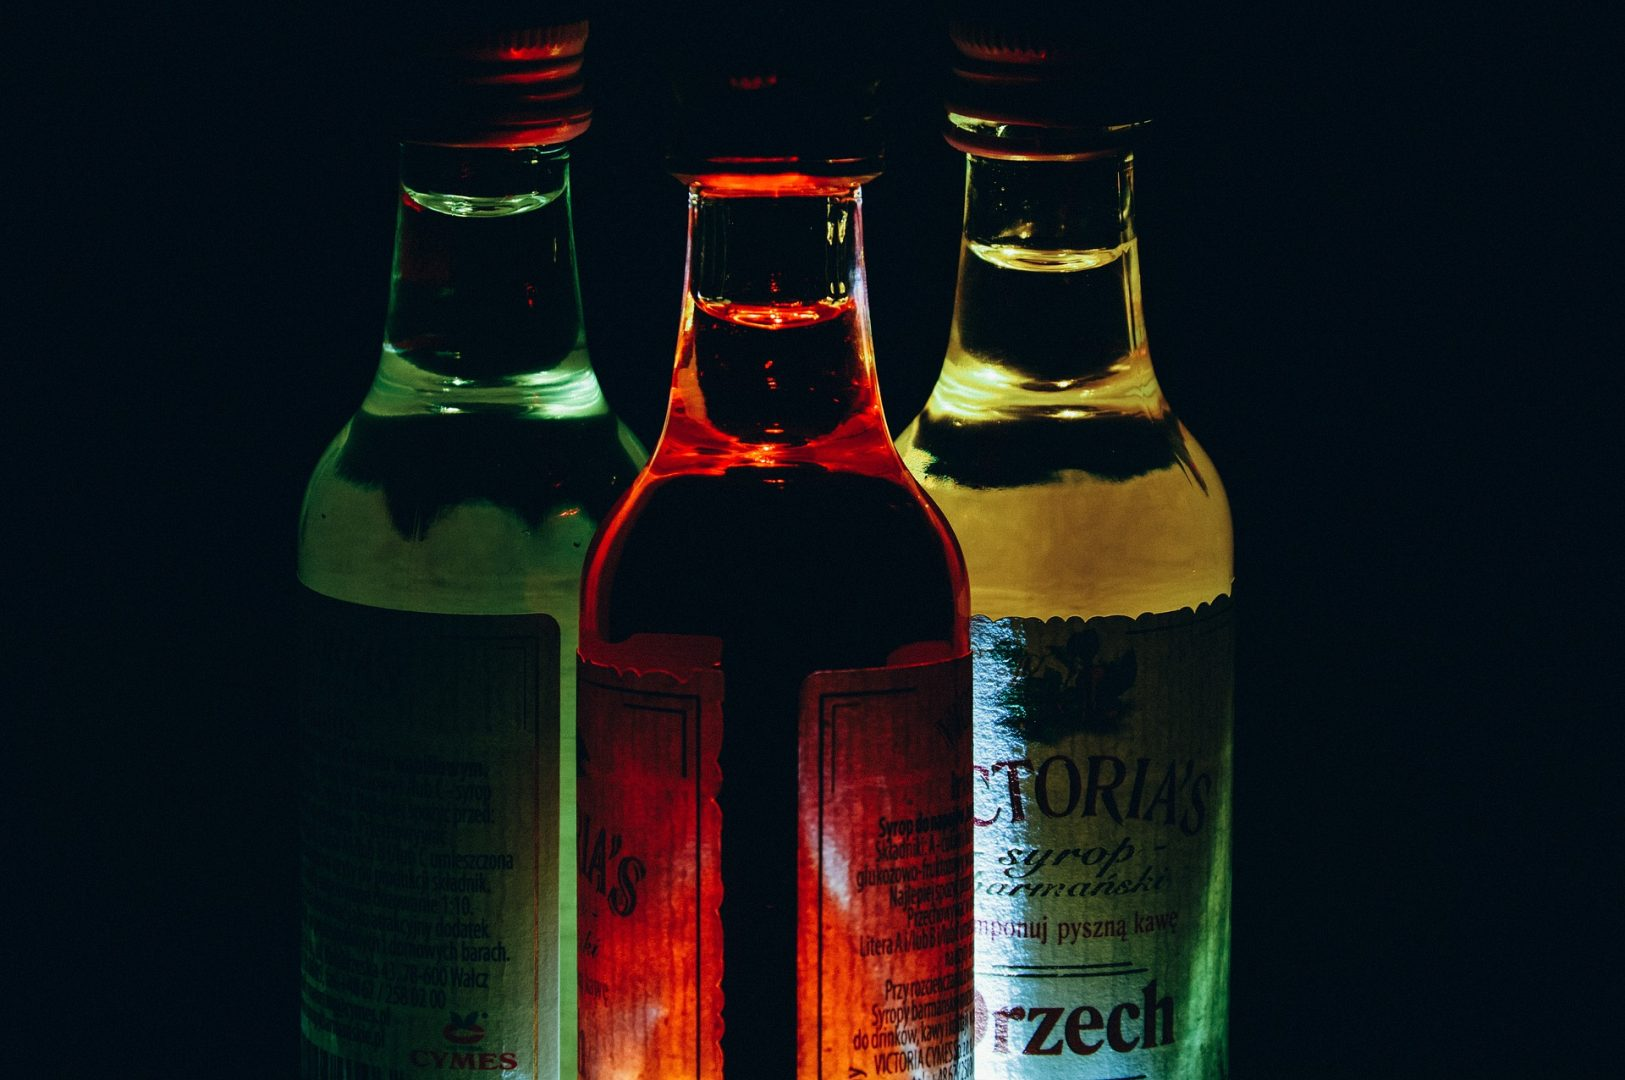 Thee illuminated bottles on a dark background